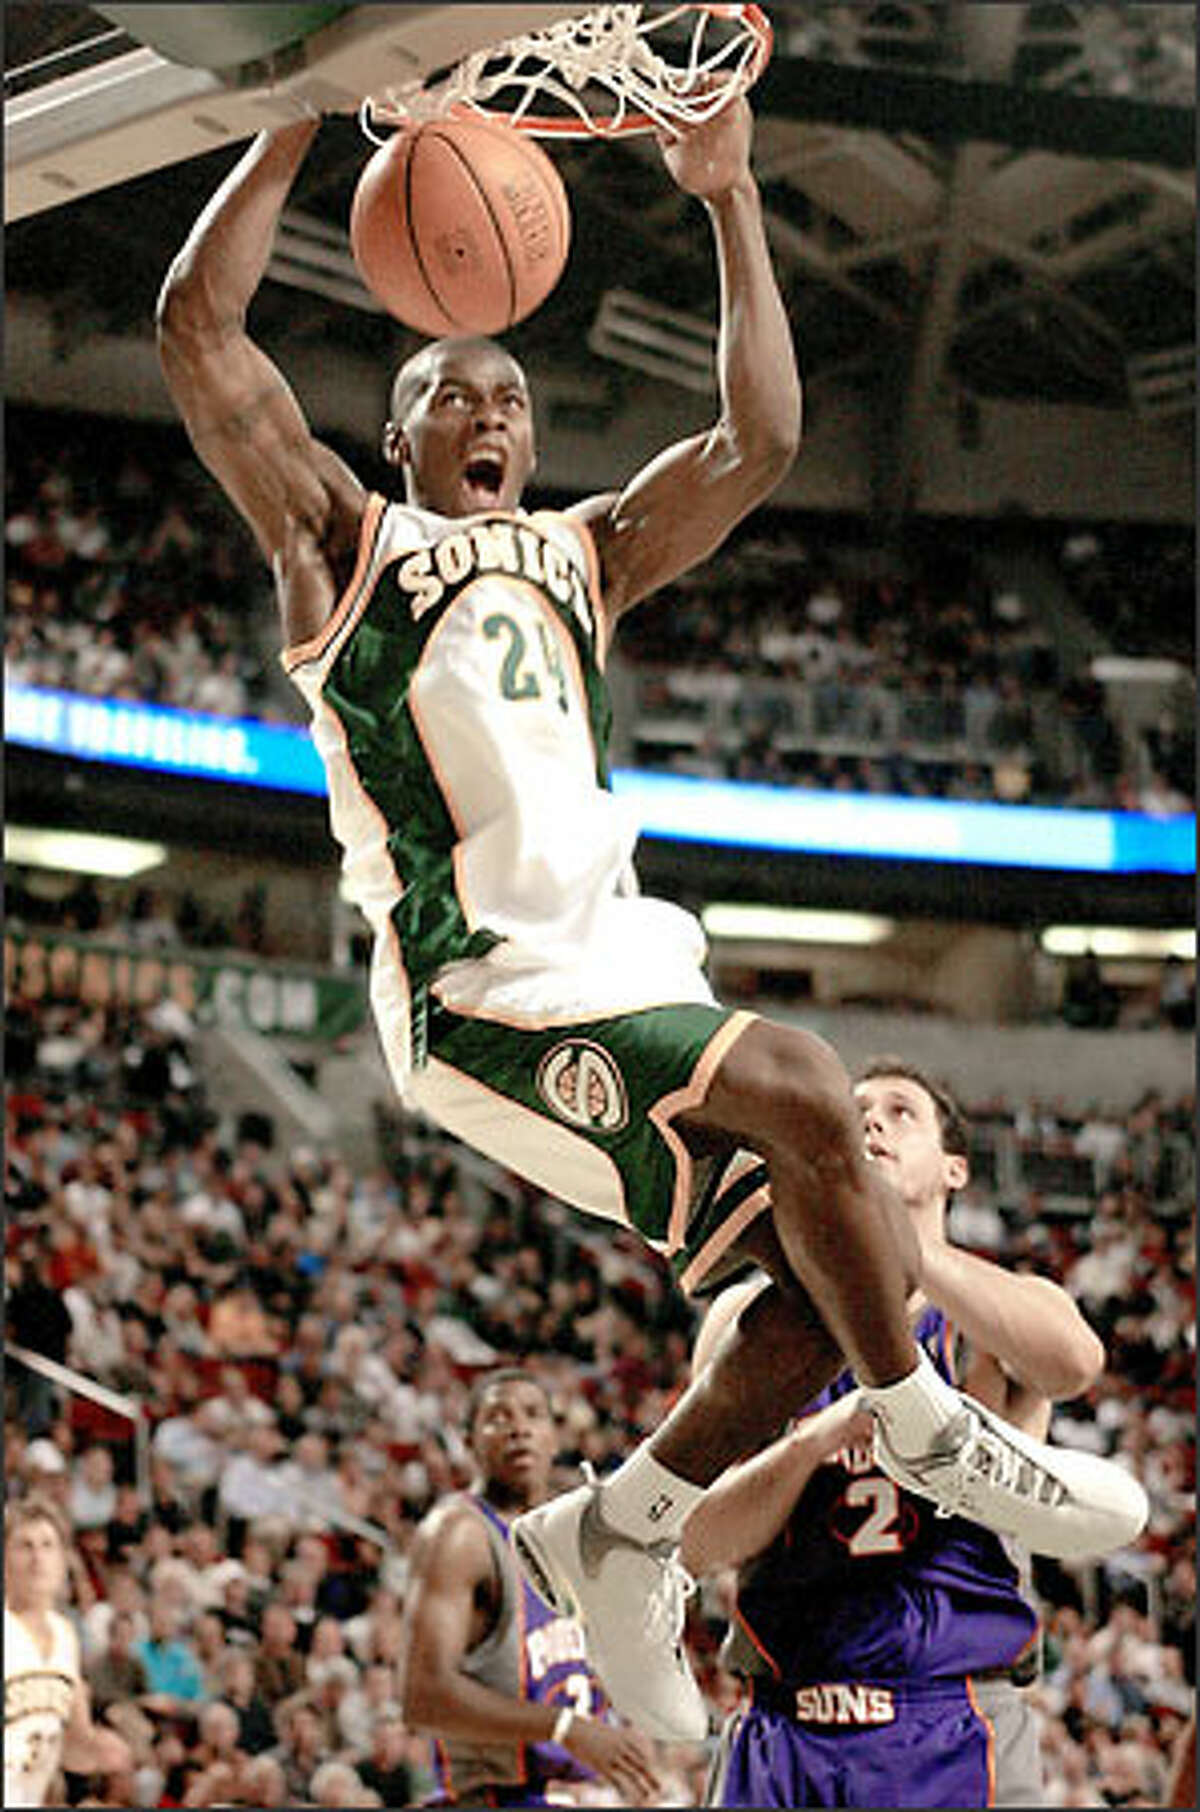 Desmond Mason gets off a powerful slam-dunk over the Phoenix Suns' Joe Johnson early in the Sonics' 86-73 win last night.